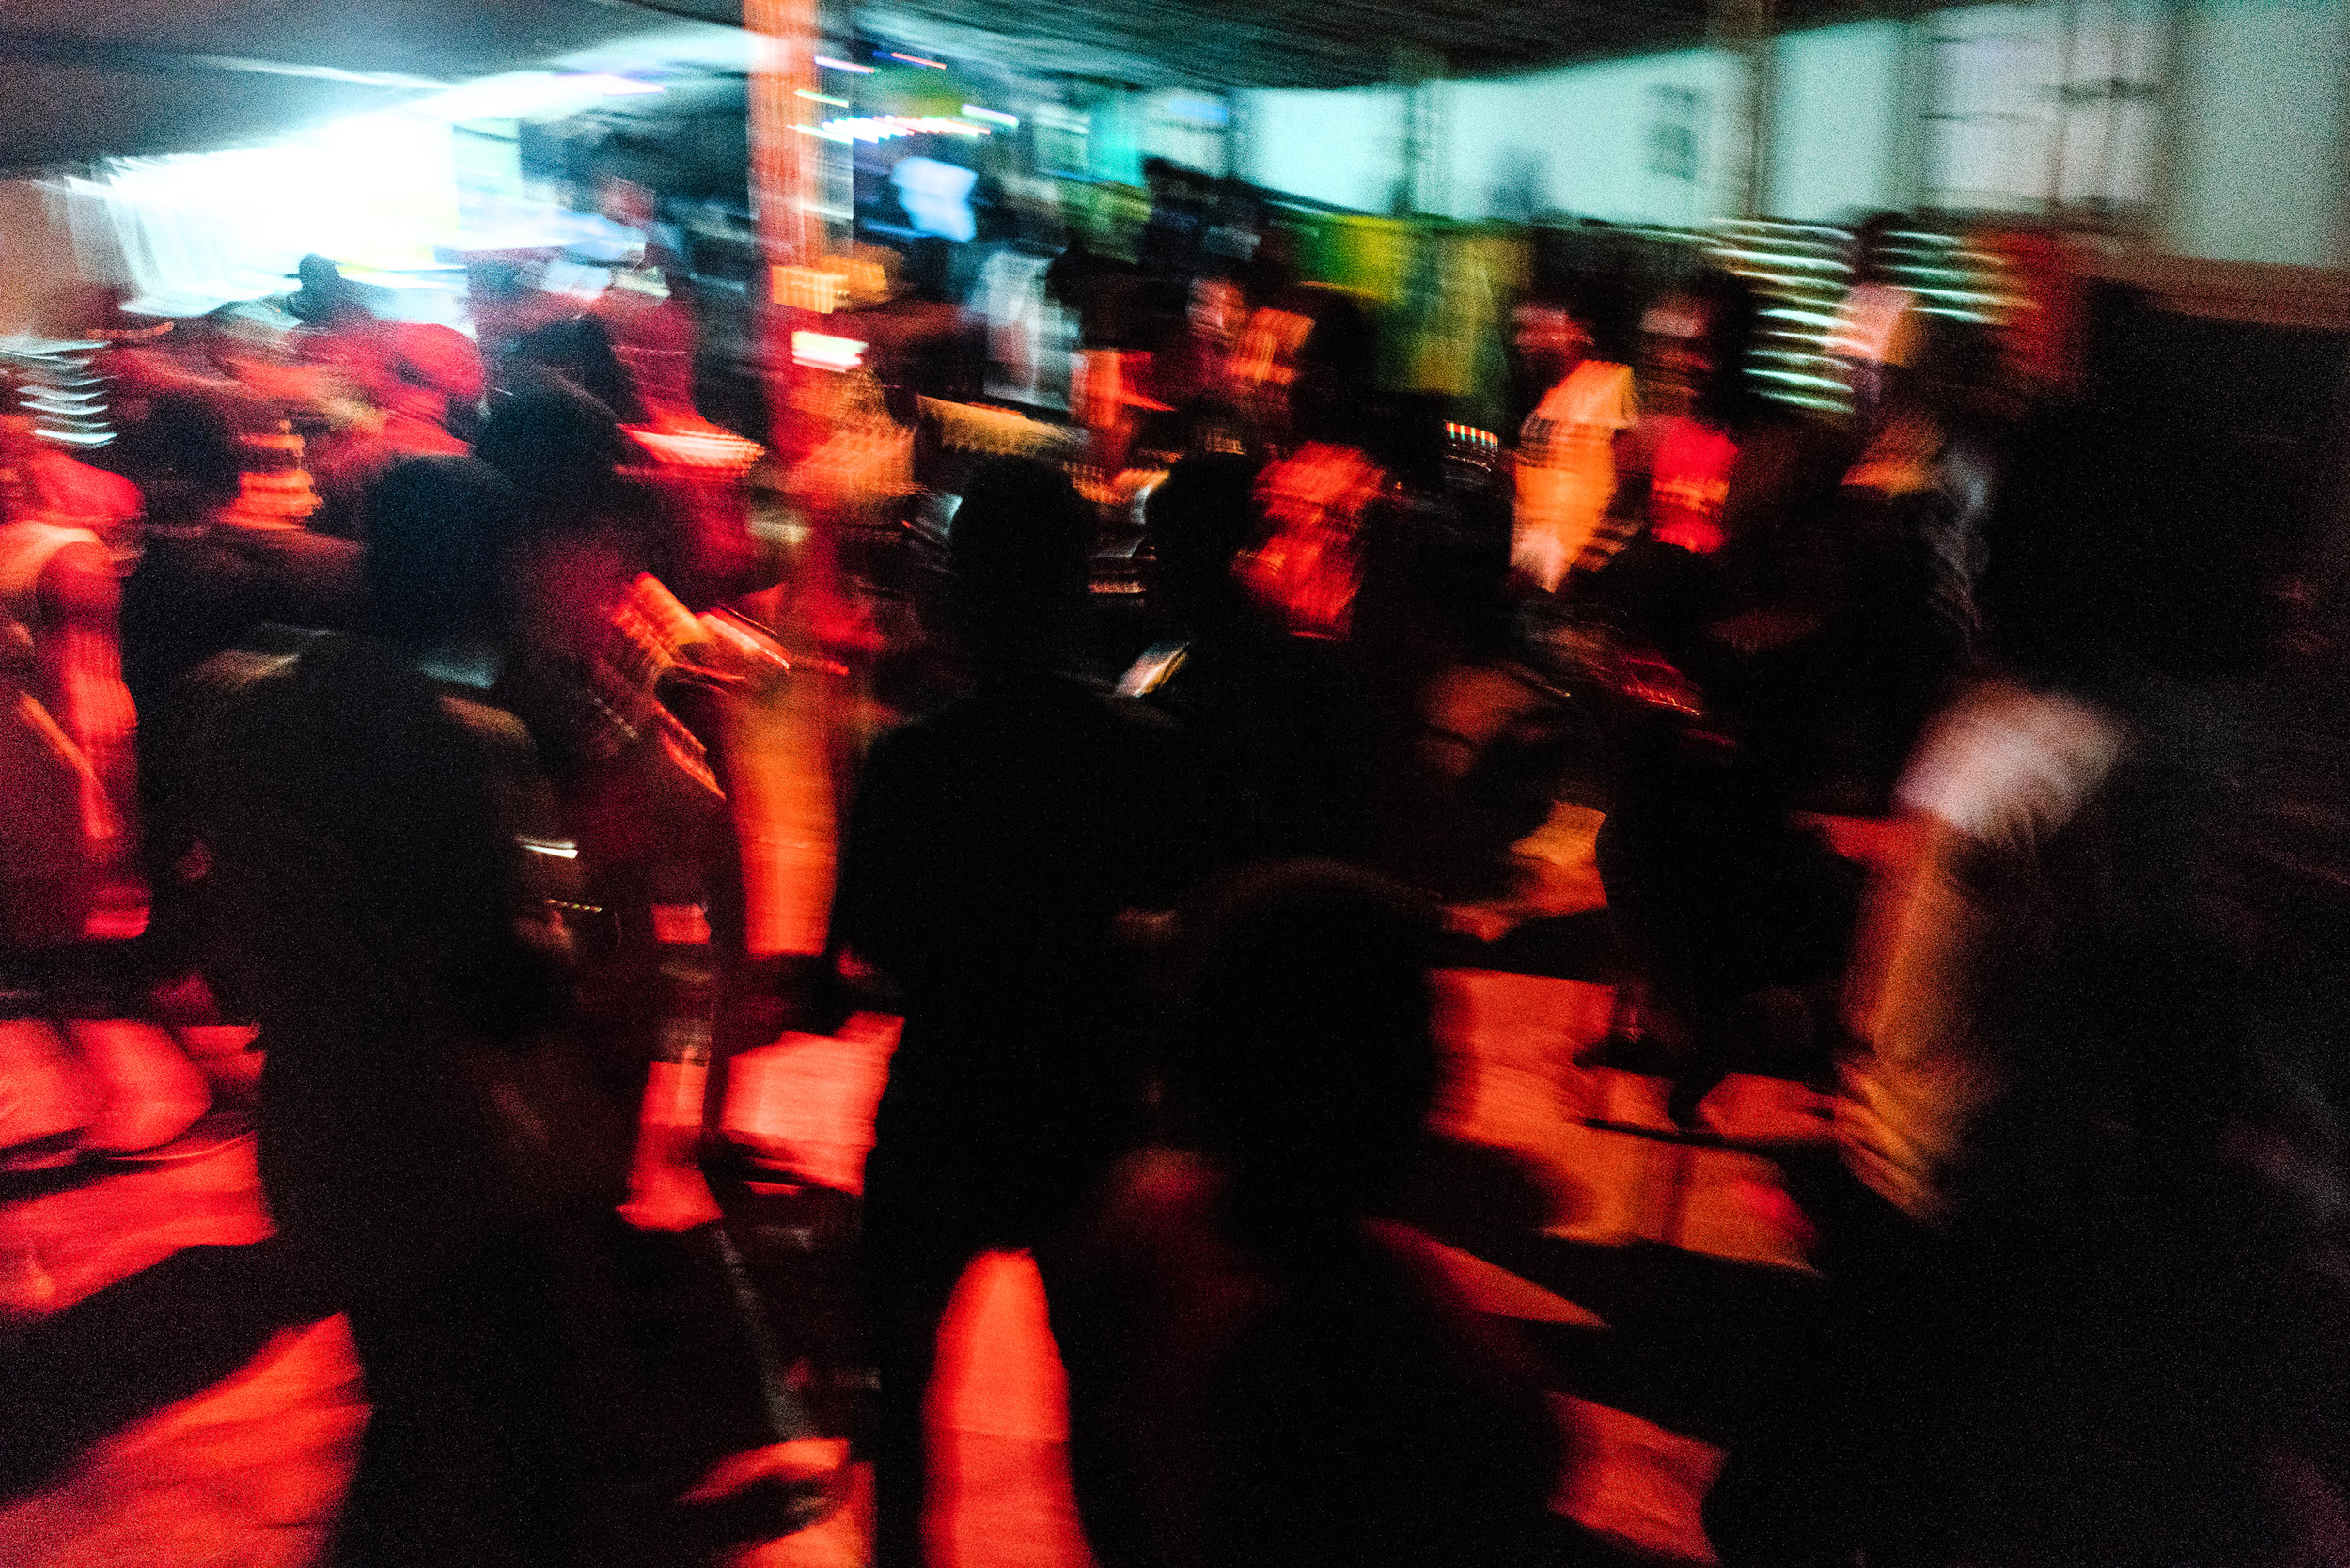 The dance floor at Ram, a bar in Kampala which hosts LGBTQ nights on Sundays and has become the de facto gay bar in the city. It was the only openly LGBTQ space in the country, but it was shut down a few months after this photo was taken, leaving the LGBTQ community there without a dedicated bar where they can go out and be themselves.